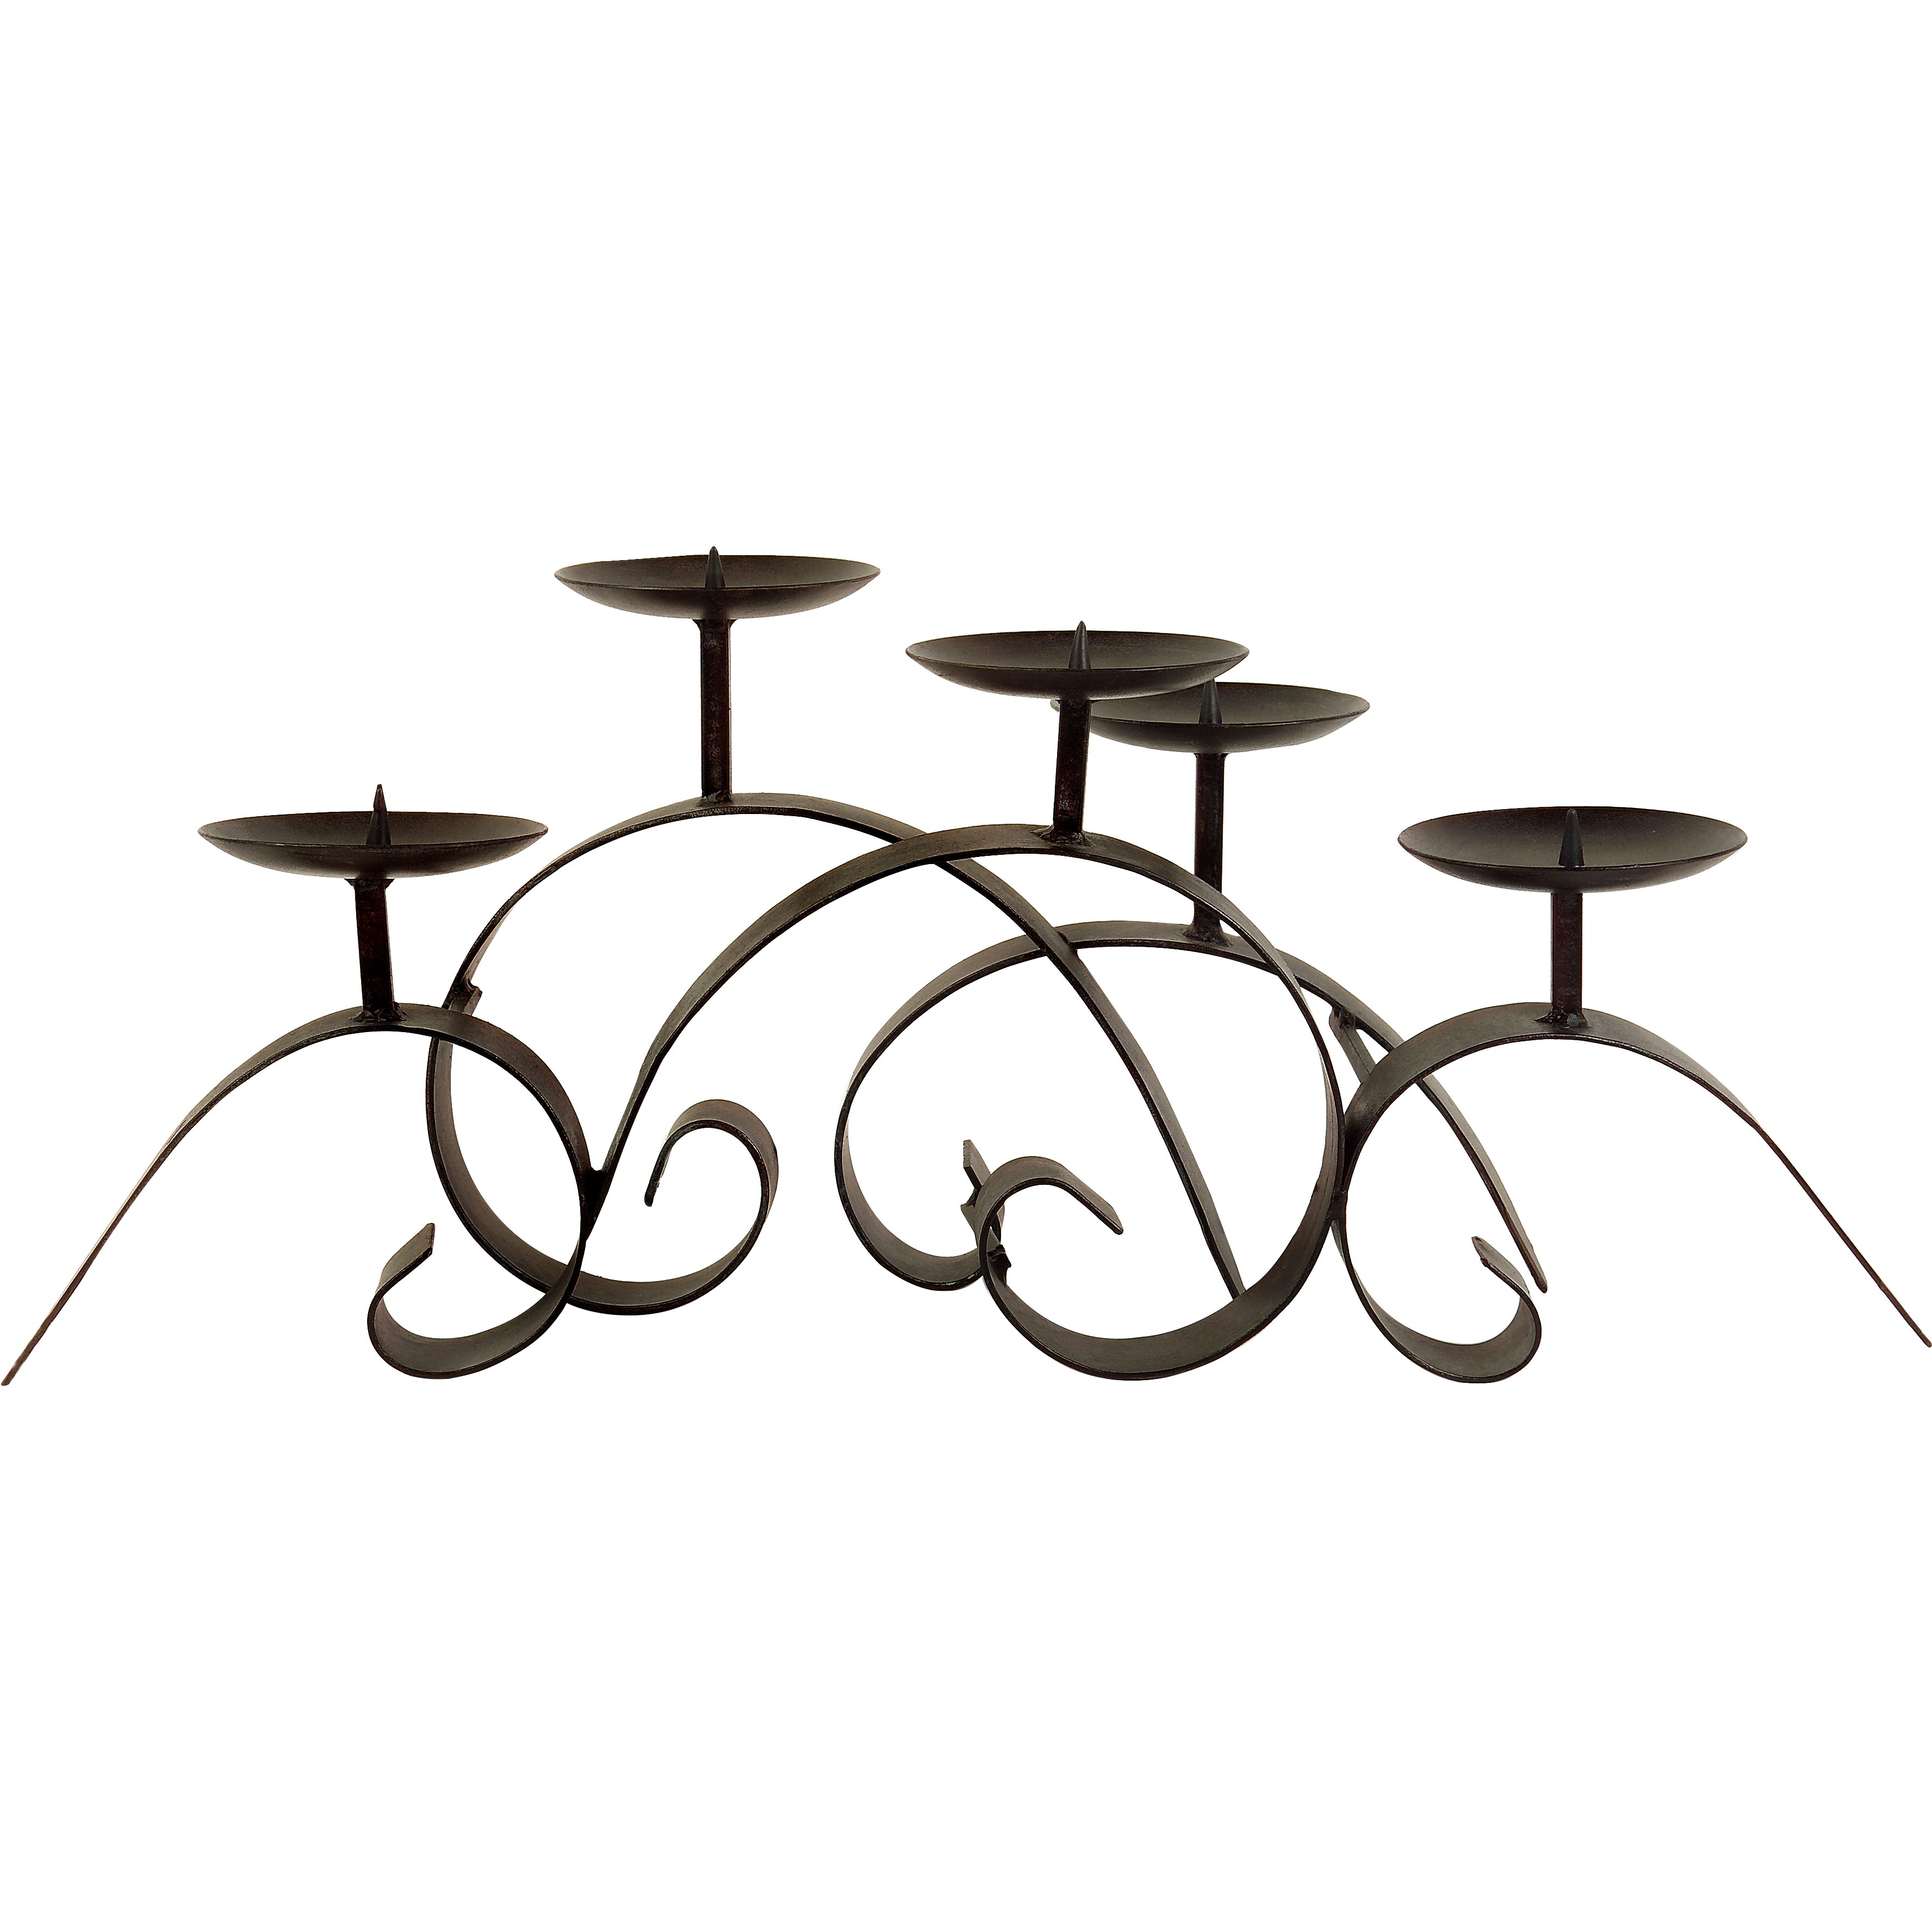 Iron Candle Stand Designs : Imax wrought iron centerpiece candelabra reviews wayfair